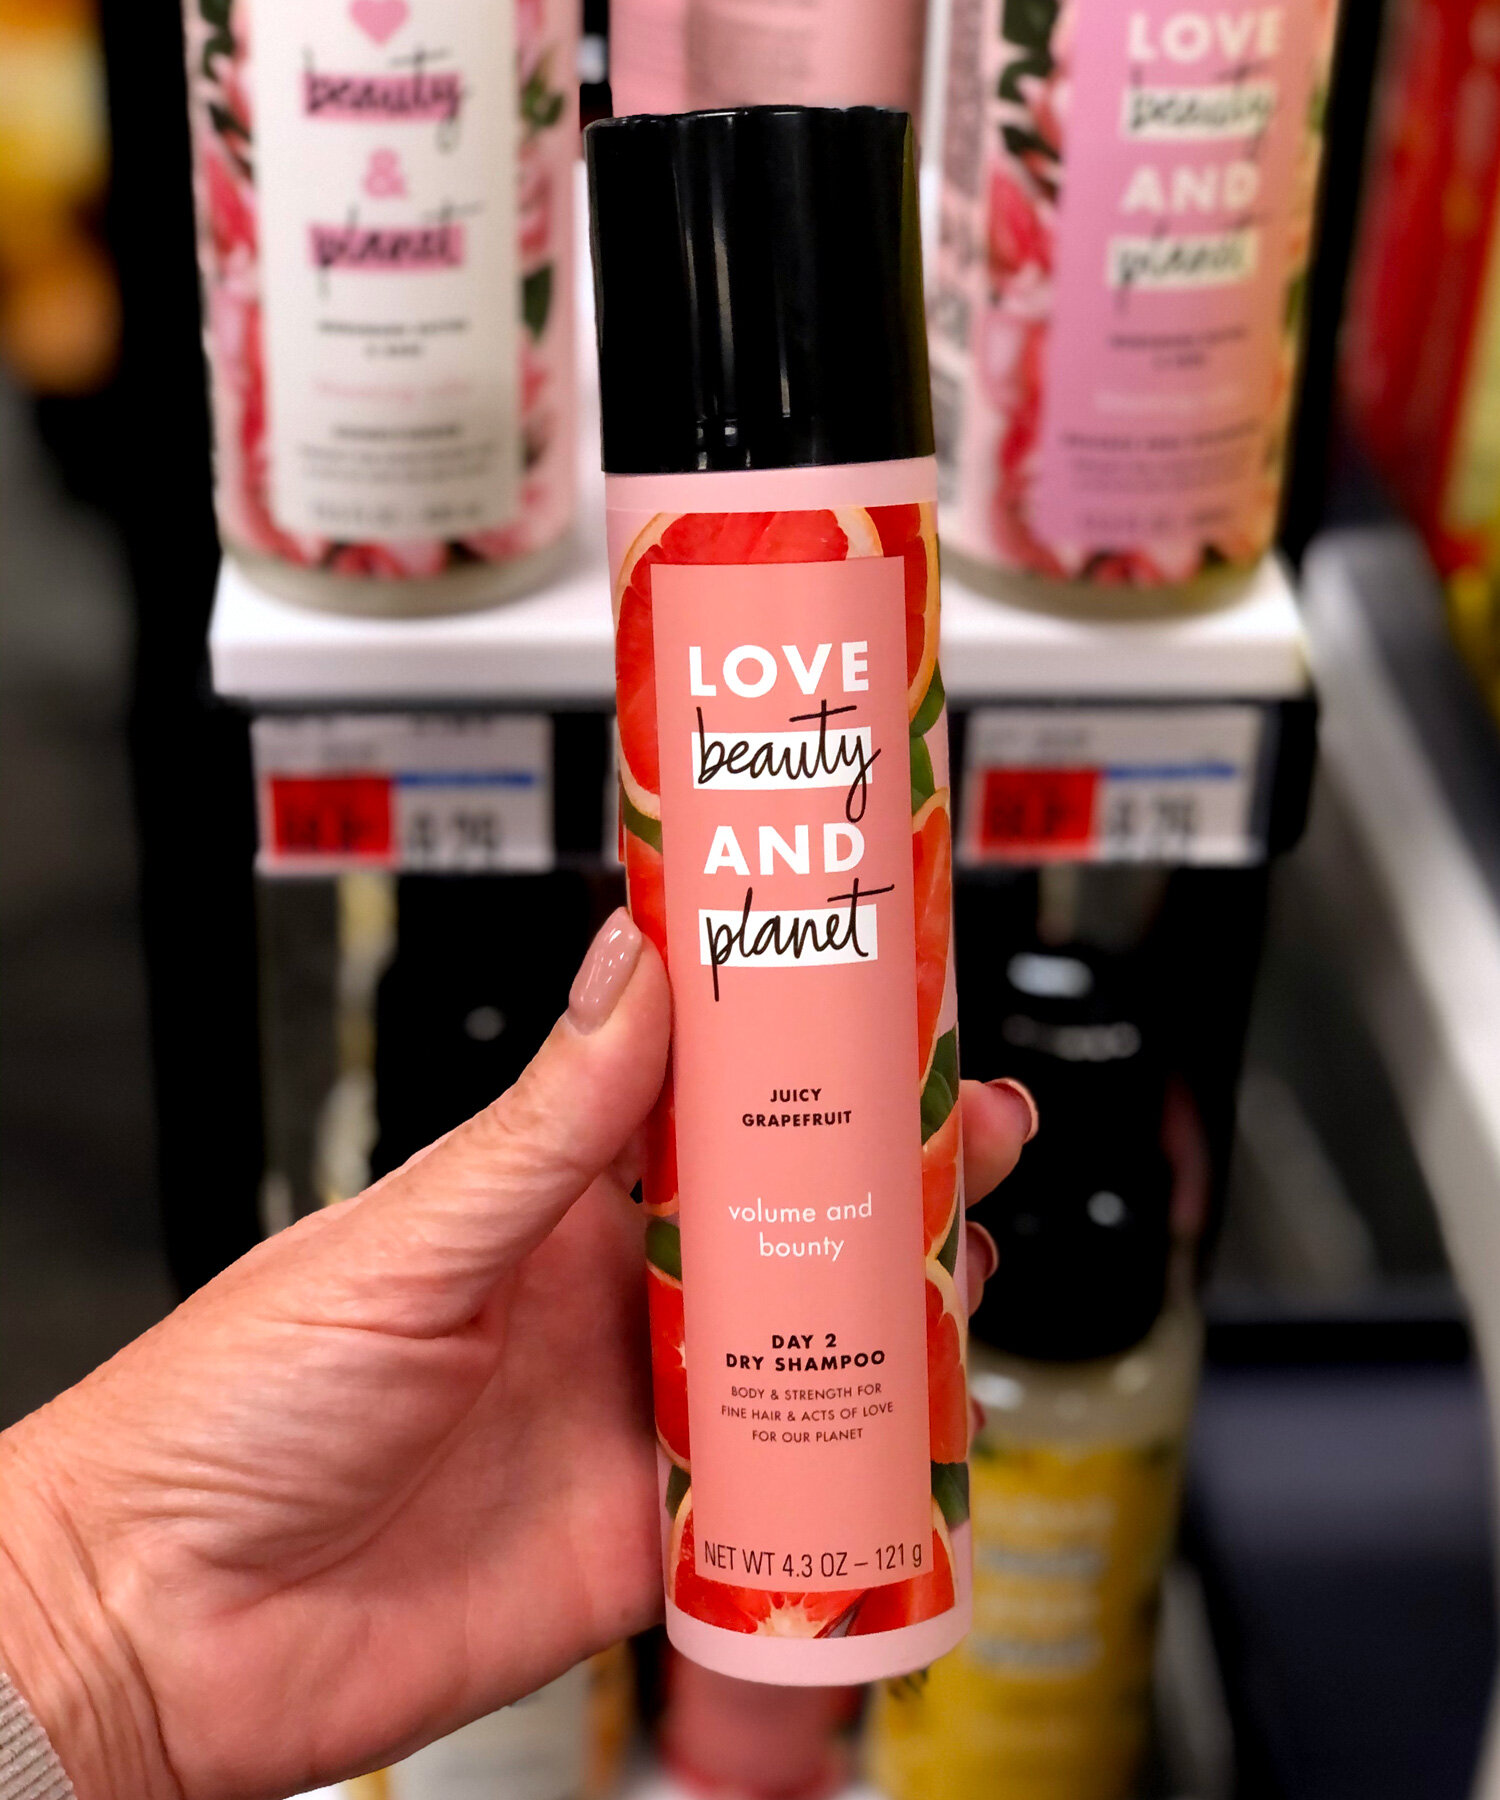 SAVE on Love, Beauty and Planet Dry Shampoo at CVS